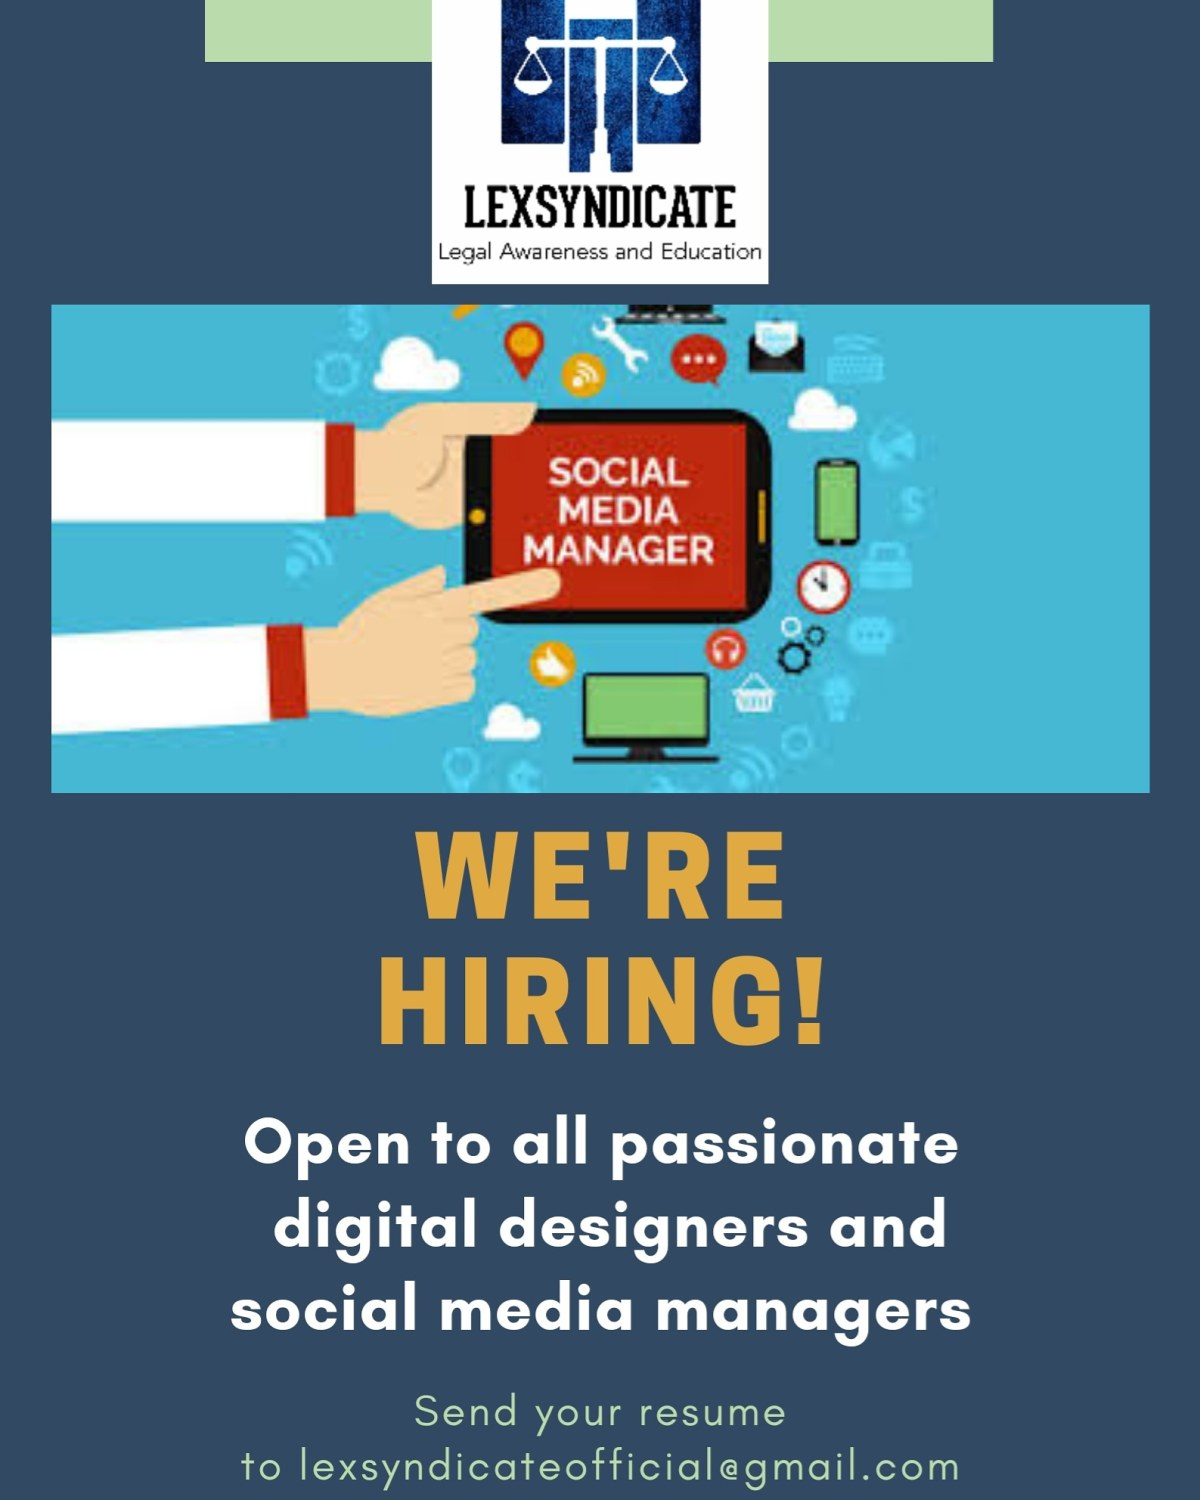 Applications open for Social Media Managers at Lexsyndicate